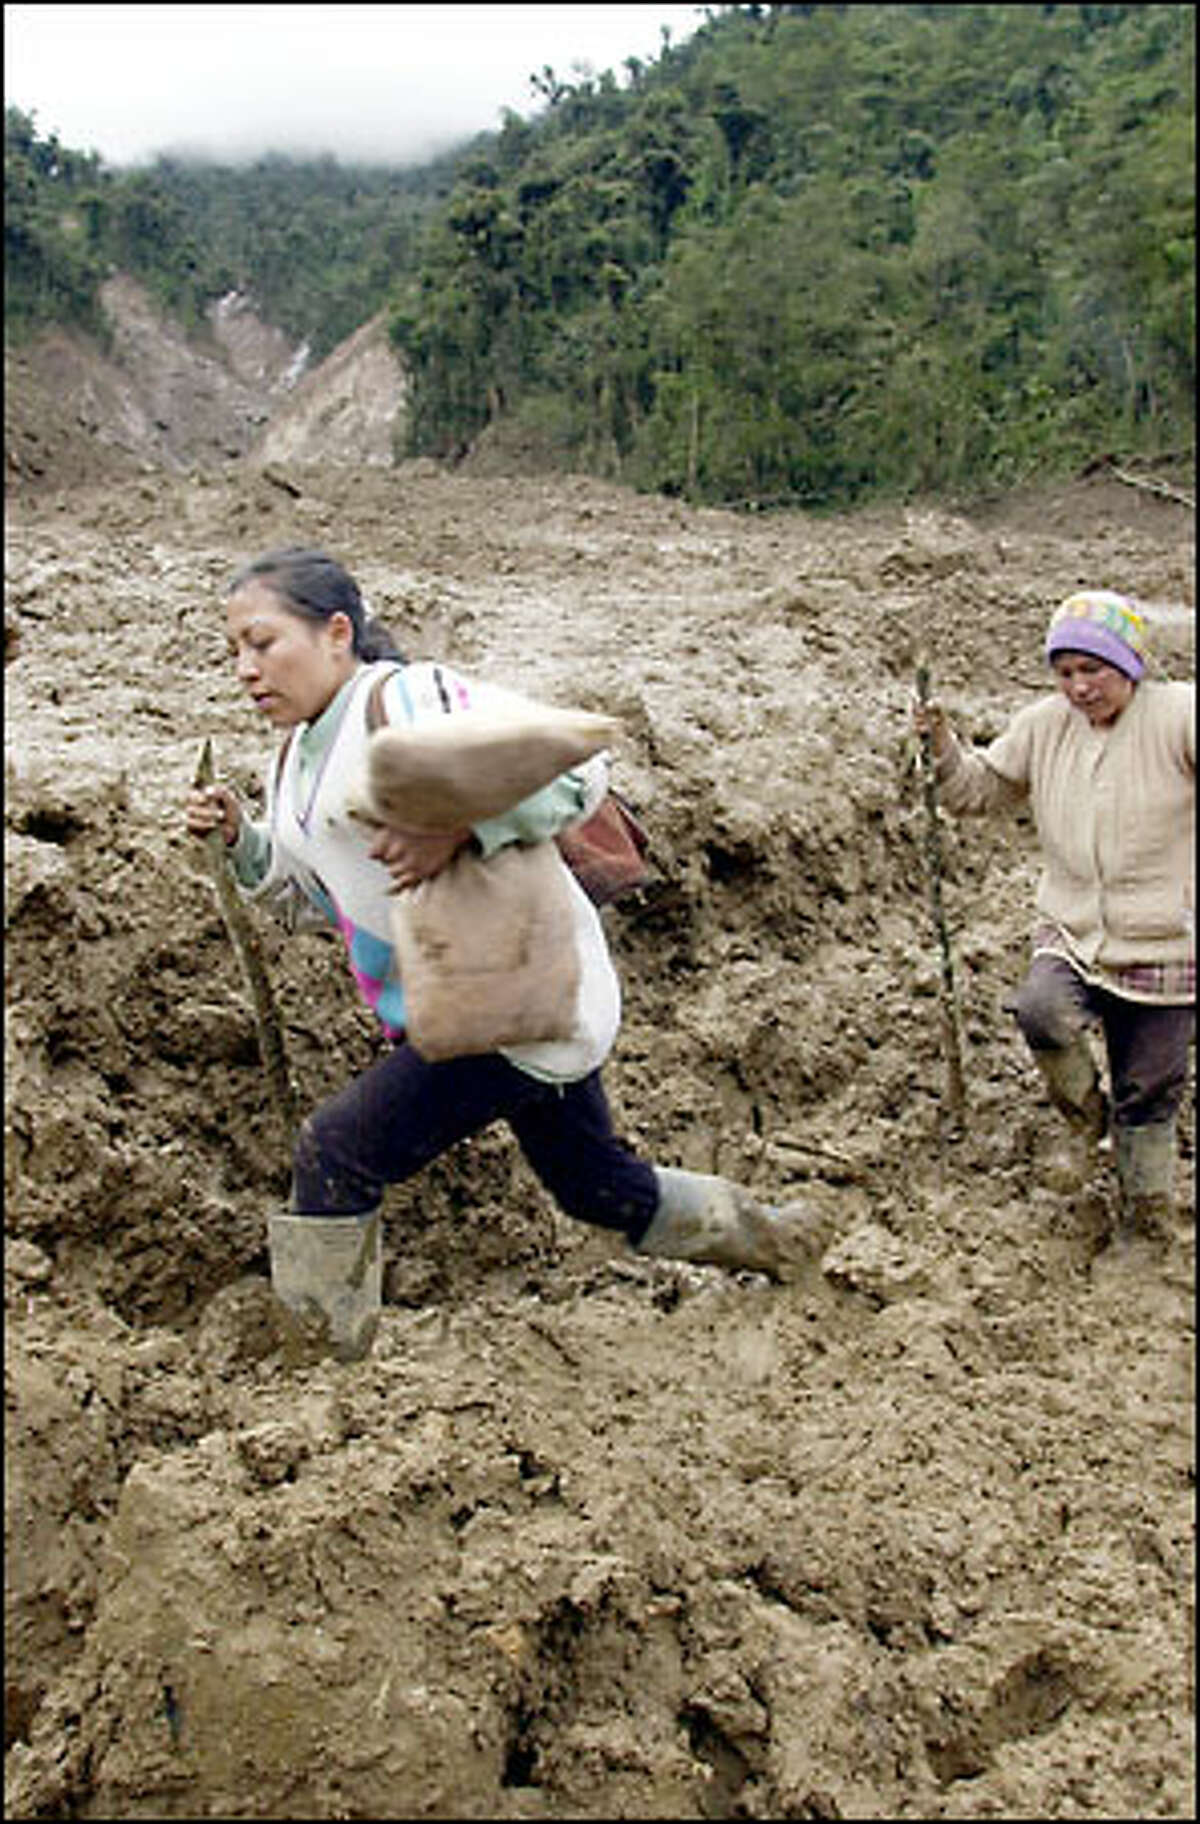 Two women wade through a mudslide in Quebrada Negra, a rural area about 30 miles east of Quito, Ecuador, yesterday after days of torrential rains. Rescue workers struggled to recover the bodies of at least 31 people buried by a landslide Tuesday as they took refuge in a home in the Andes near Papallacta. Among the victims was the homeowner, who had invited about 30 people in when their bus became blocked by other landslides. A civil defense official said at least 48 people have been killed by landslides or drowned in Ecuador's Andes and Amazon jungle after four days of heavy rain.